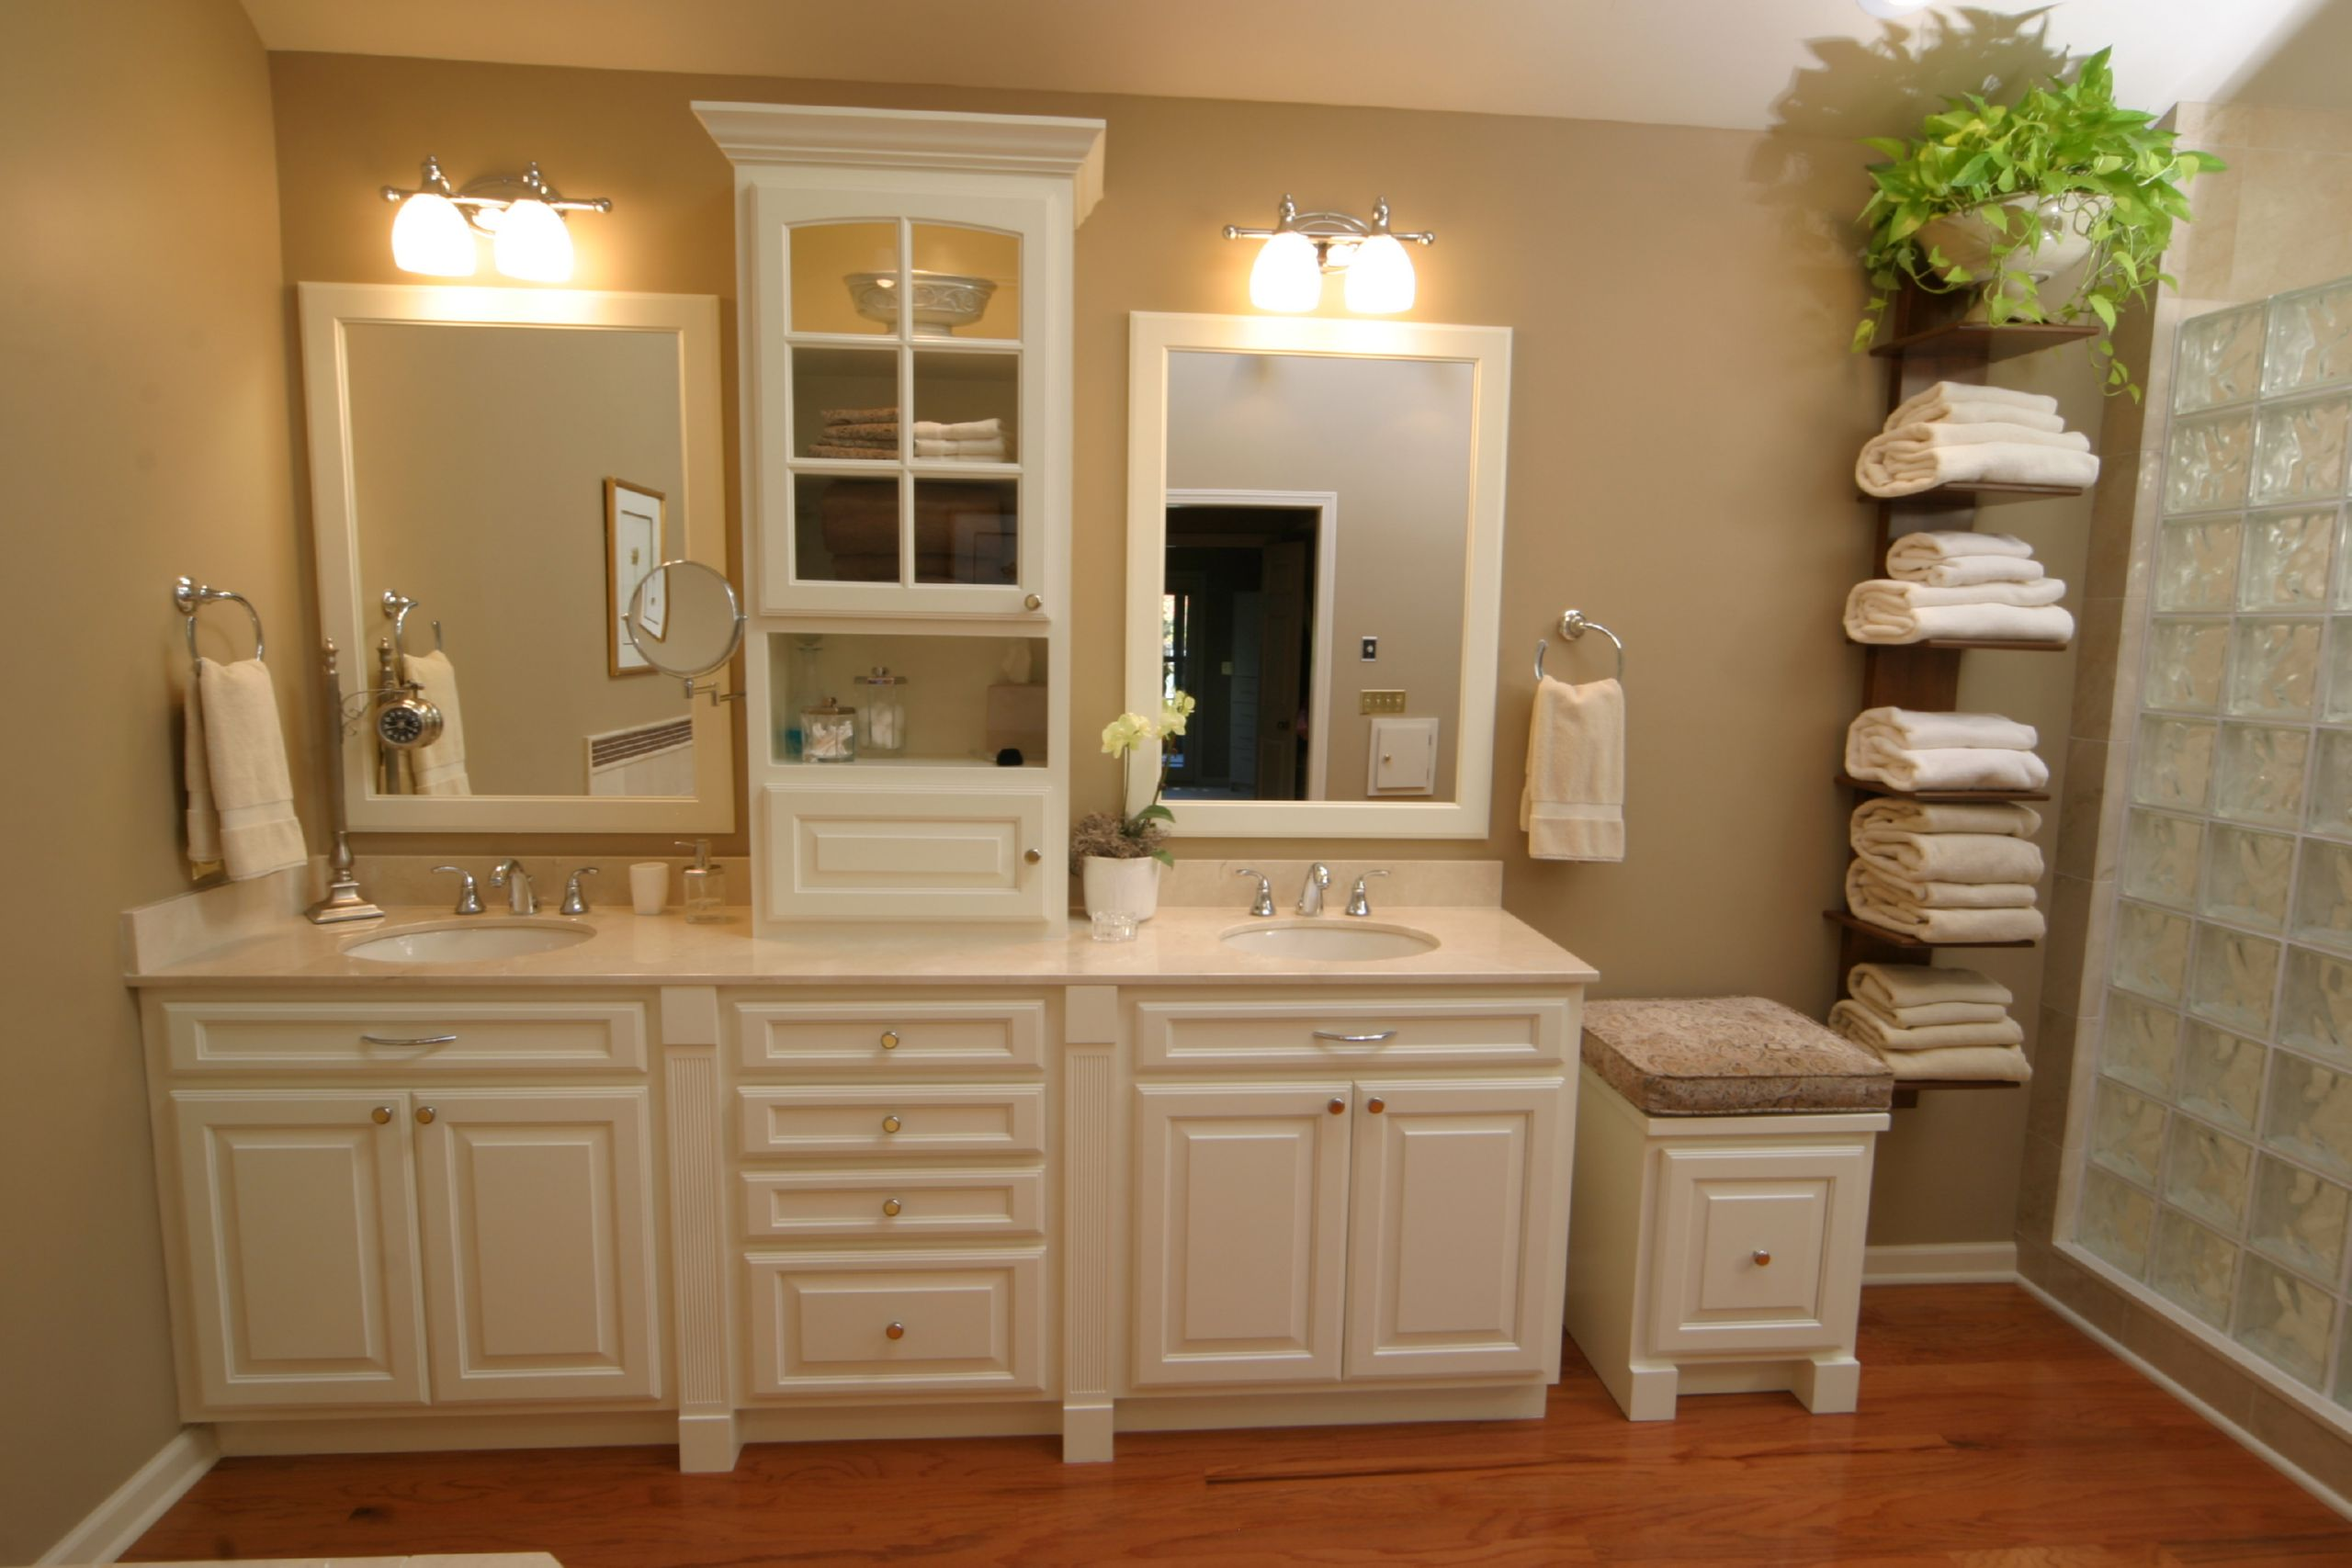 Bathroom remodeling bath remodel contractor for Bathroom remodel ideas